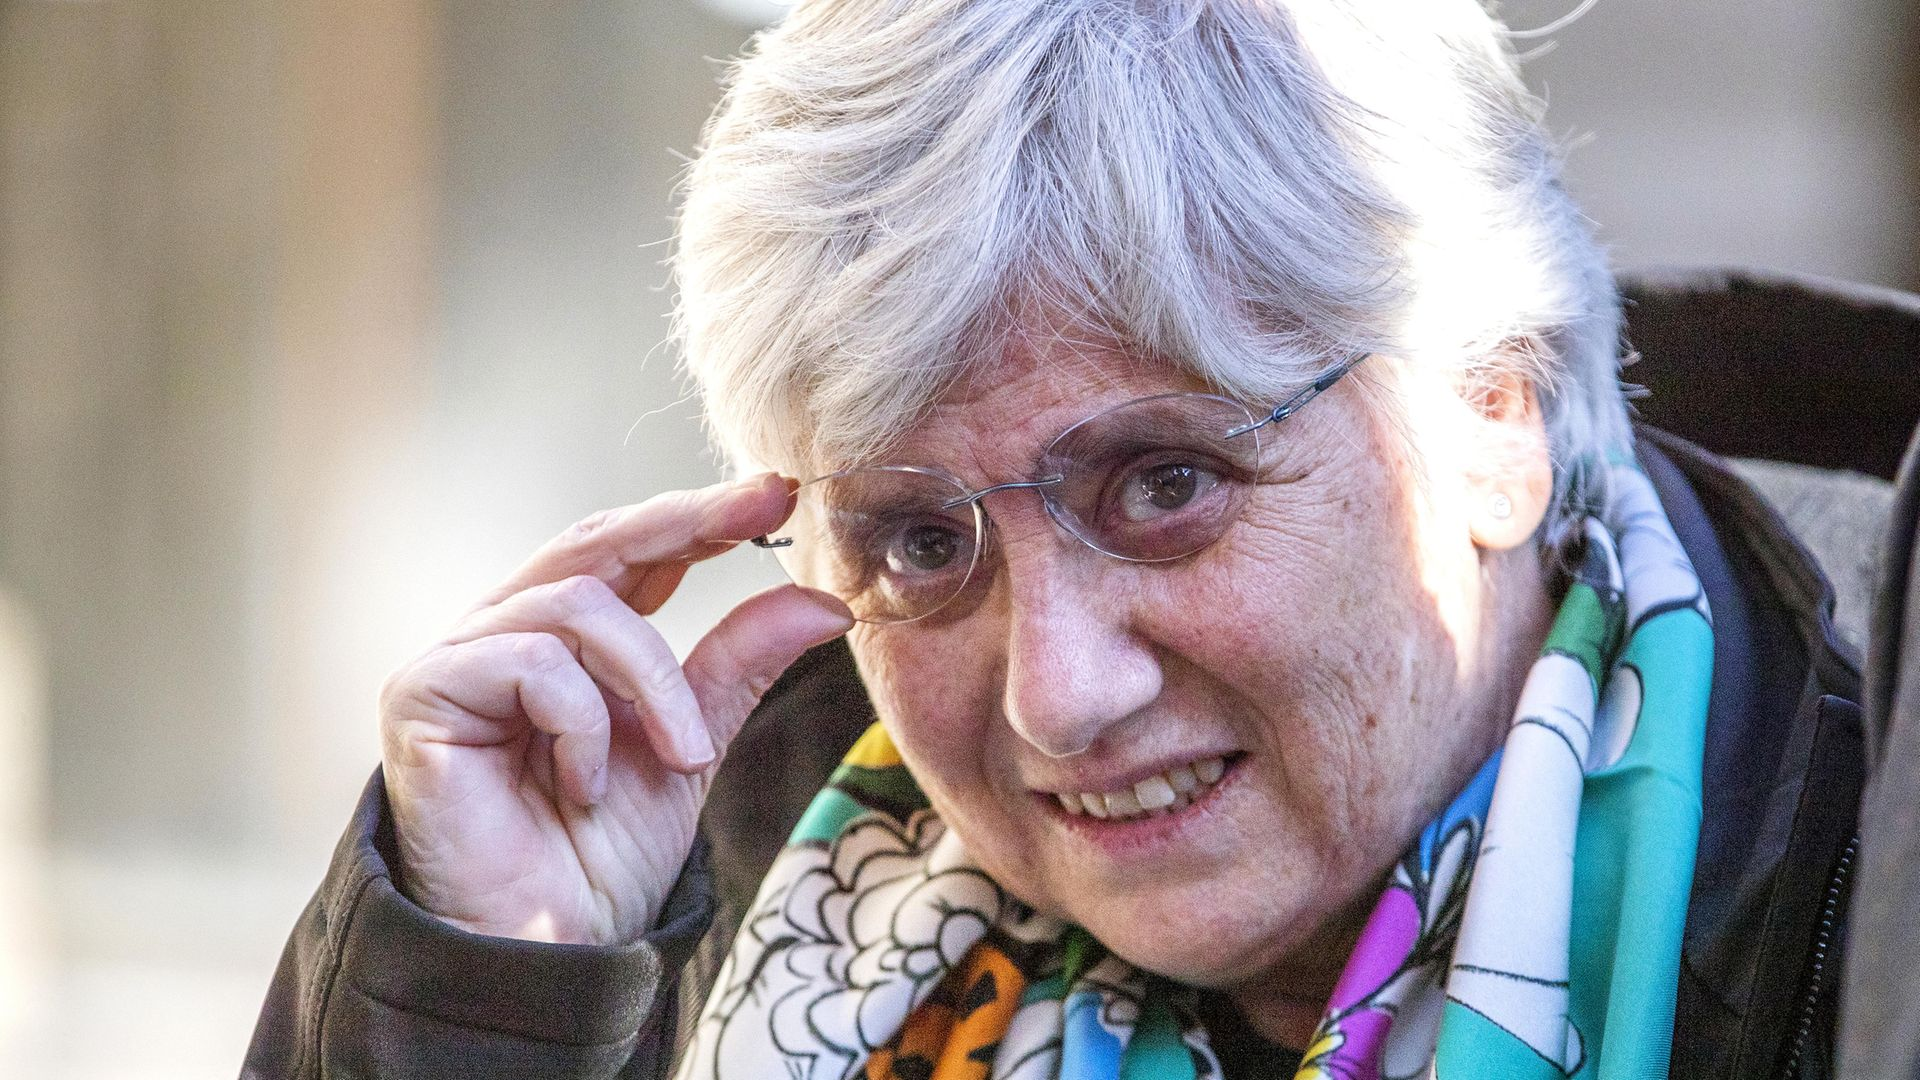 Lawyers for Clara Ponsati have vowed to fight on after the European parliament voted to remove her immunity - Credit: PA